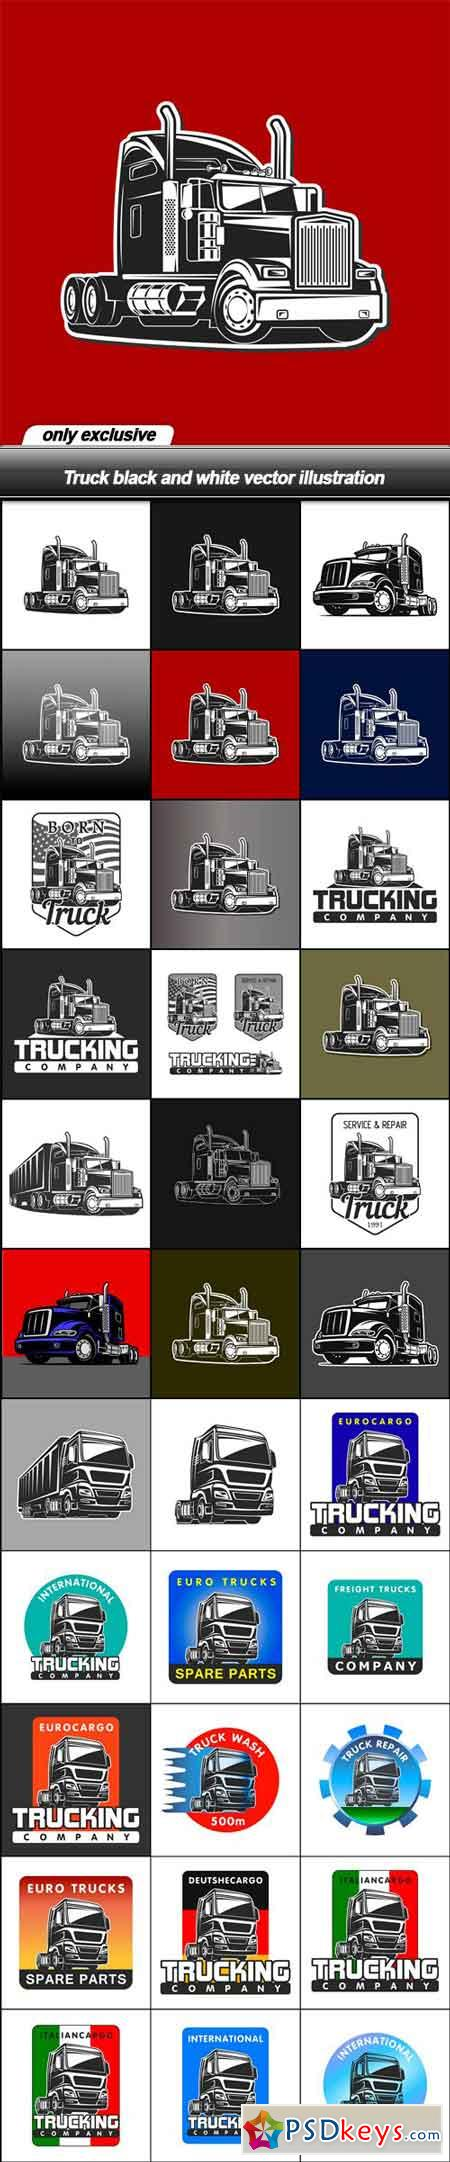 Truck black and white vector illustration - 33 EPS